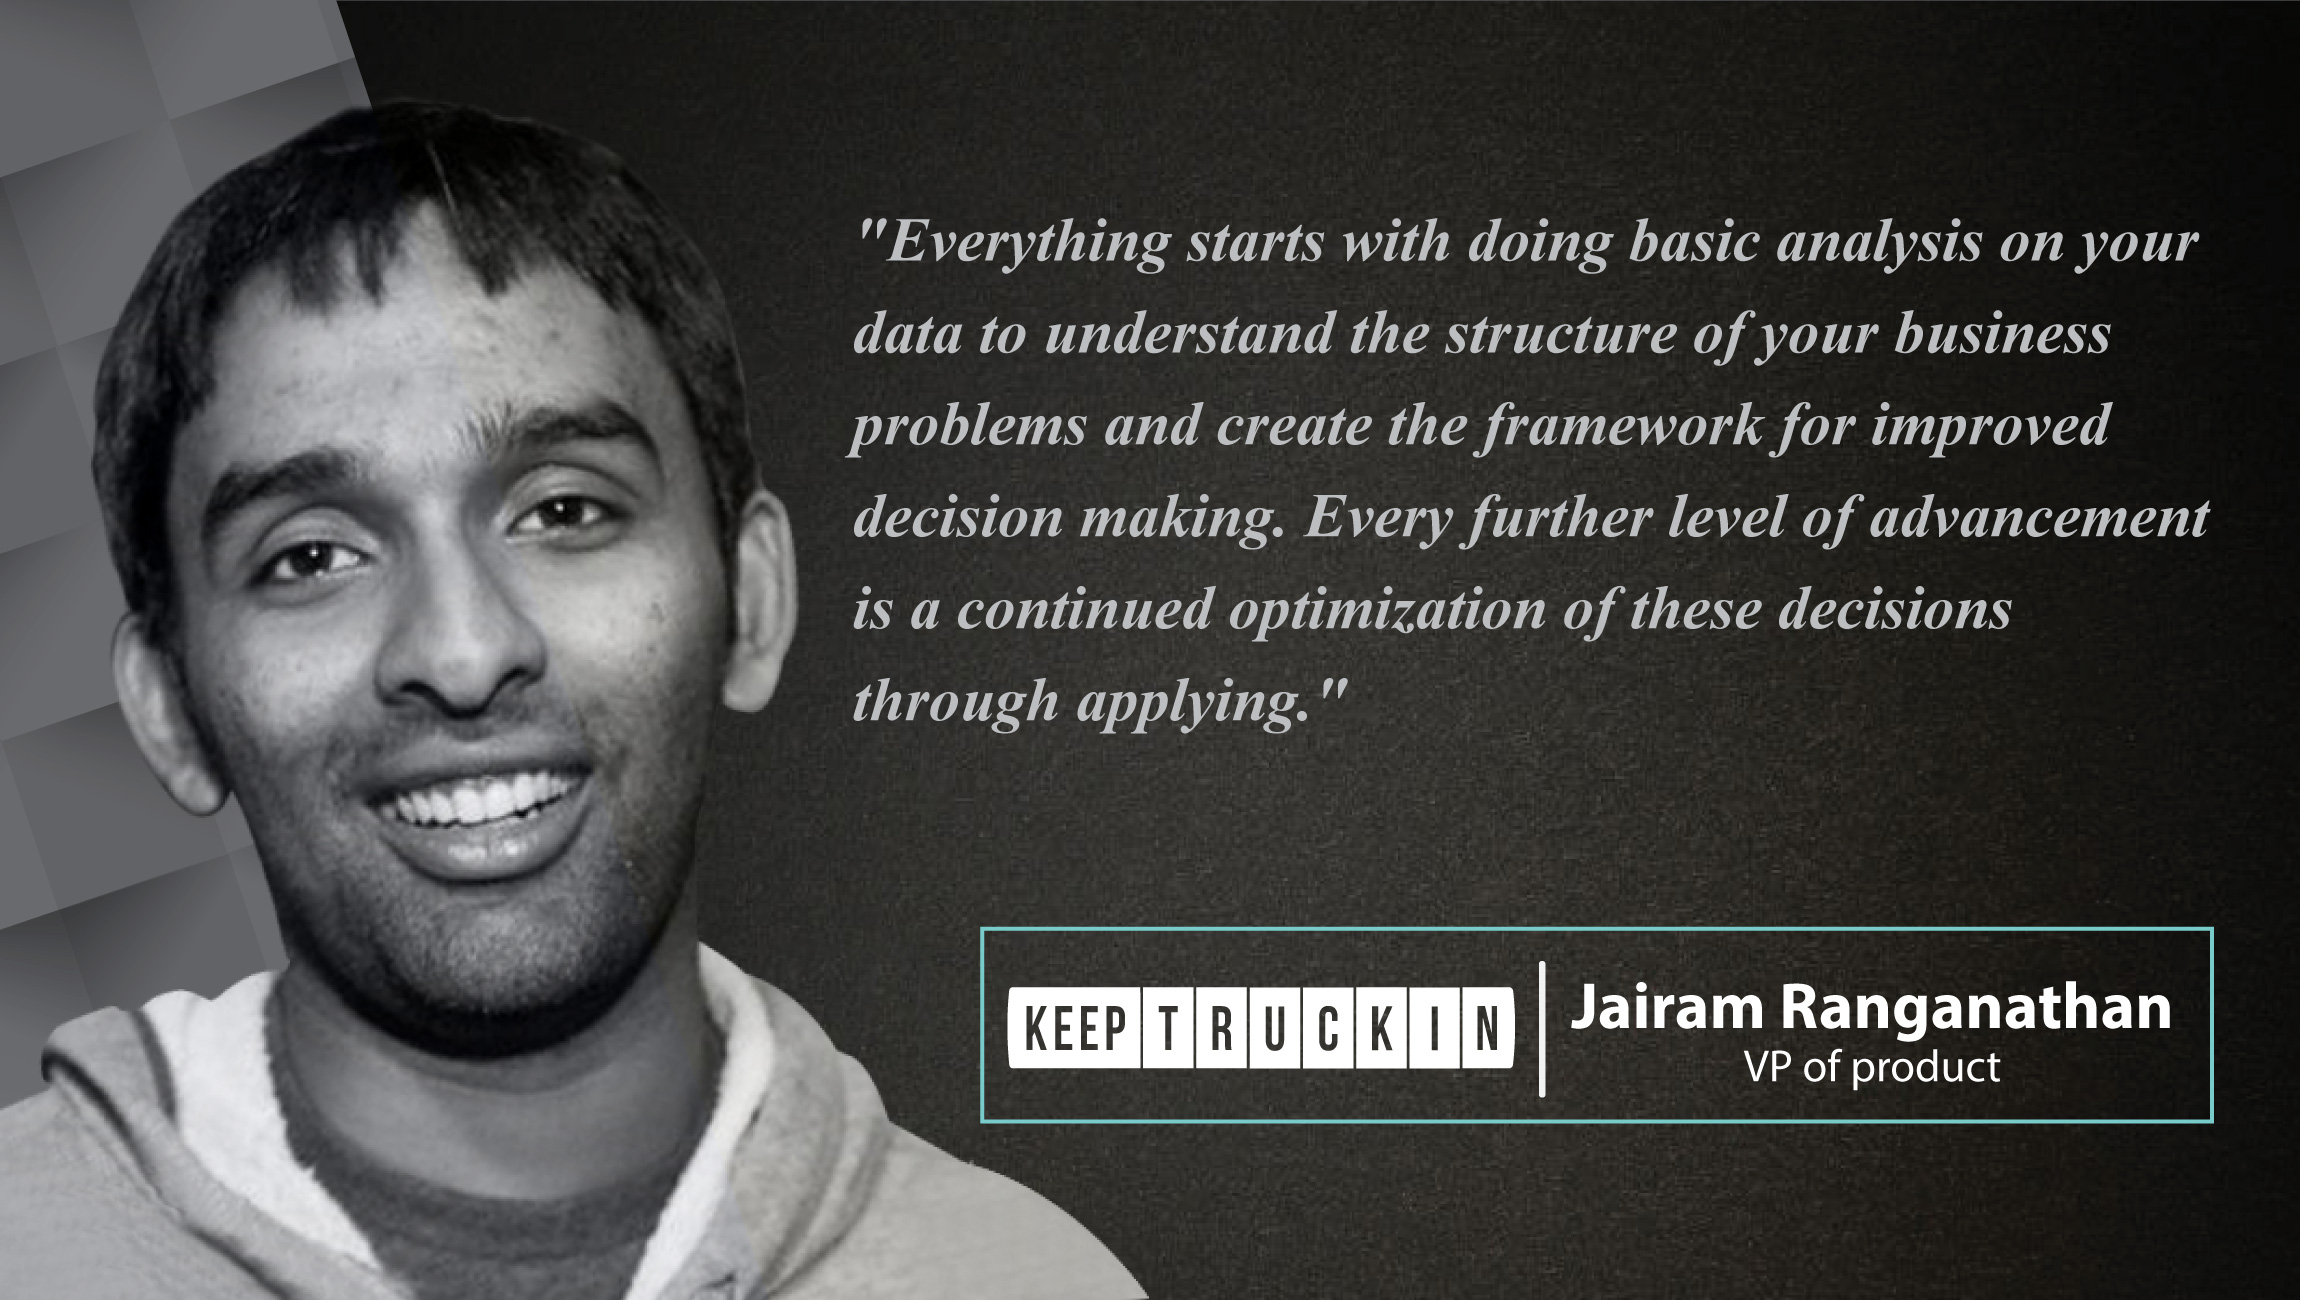 AiThority Interview With Jairam Ranganathan, VP of product at KeepTruckin